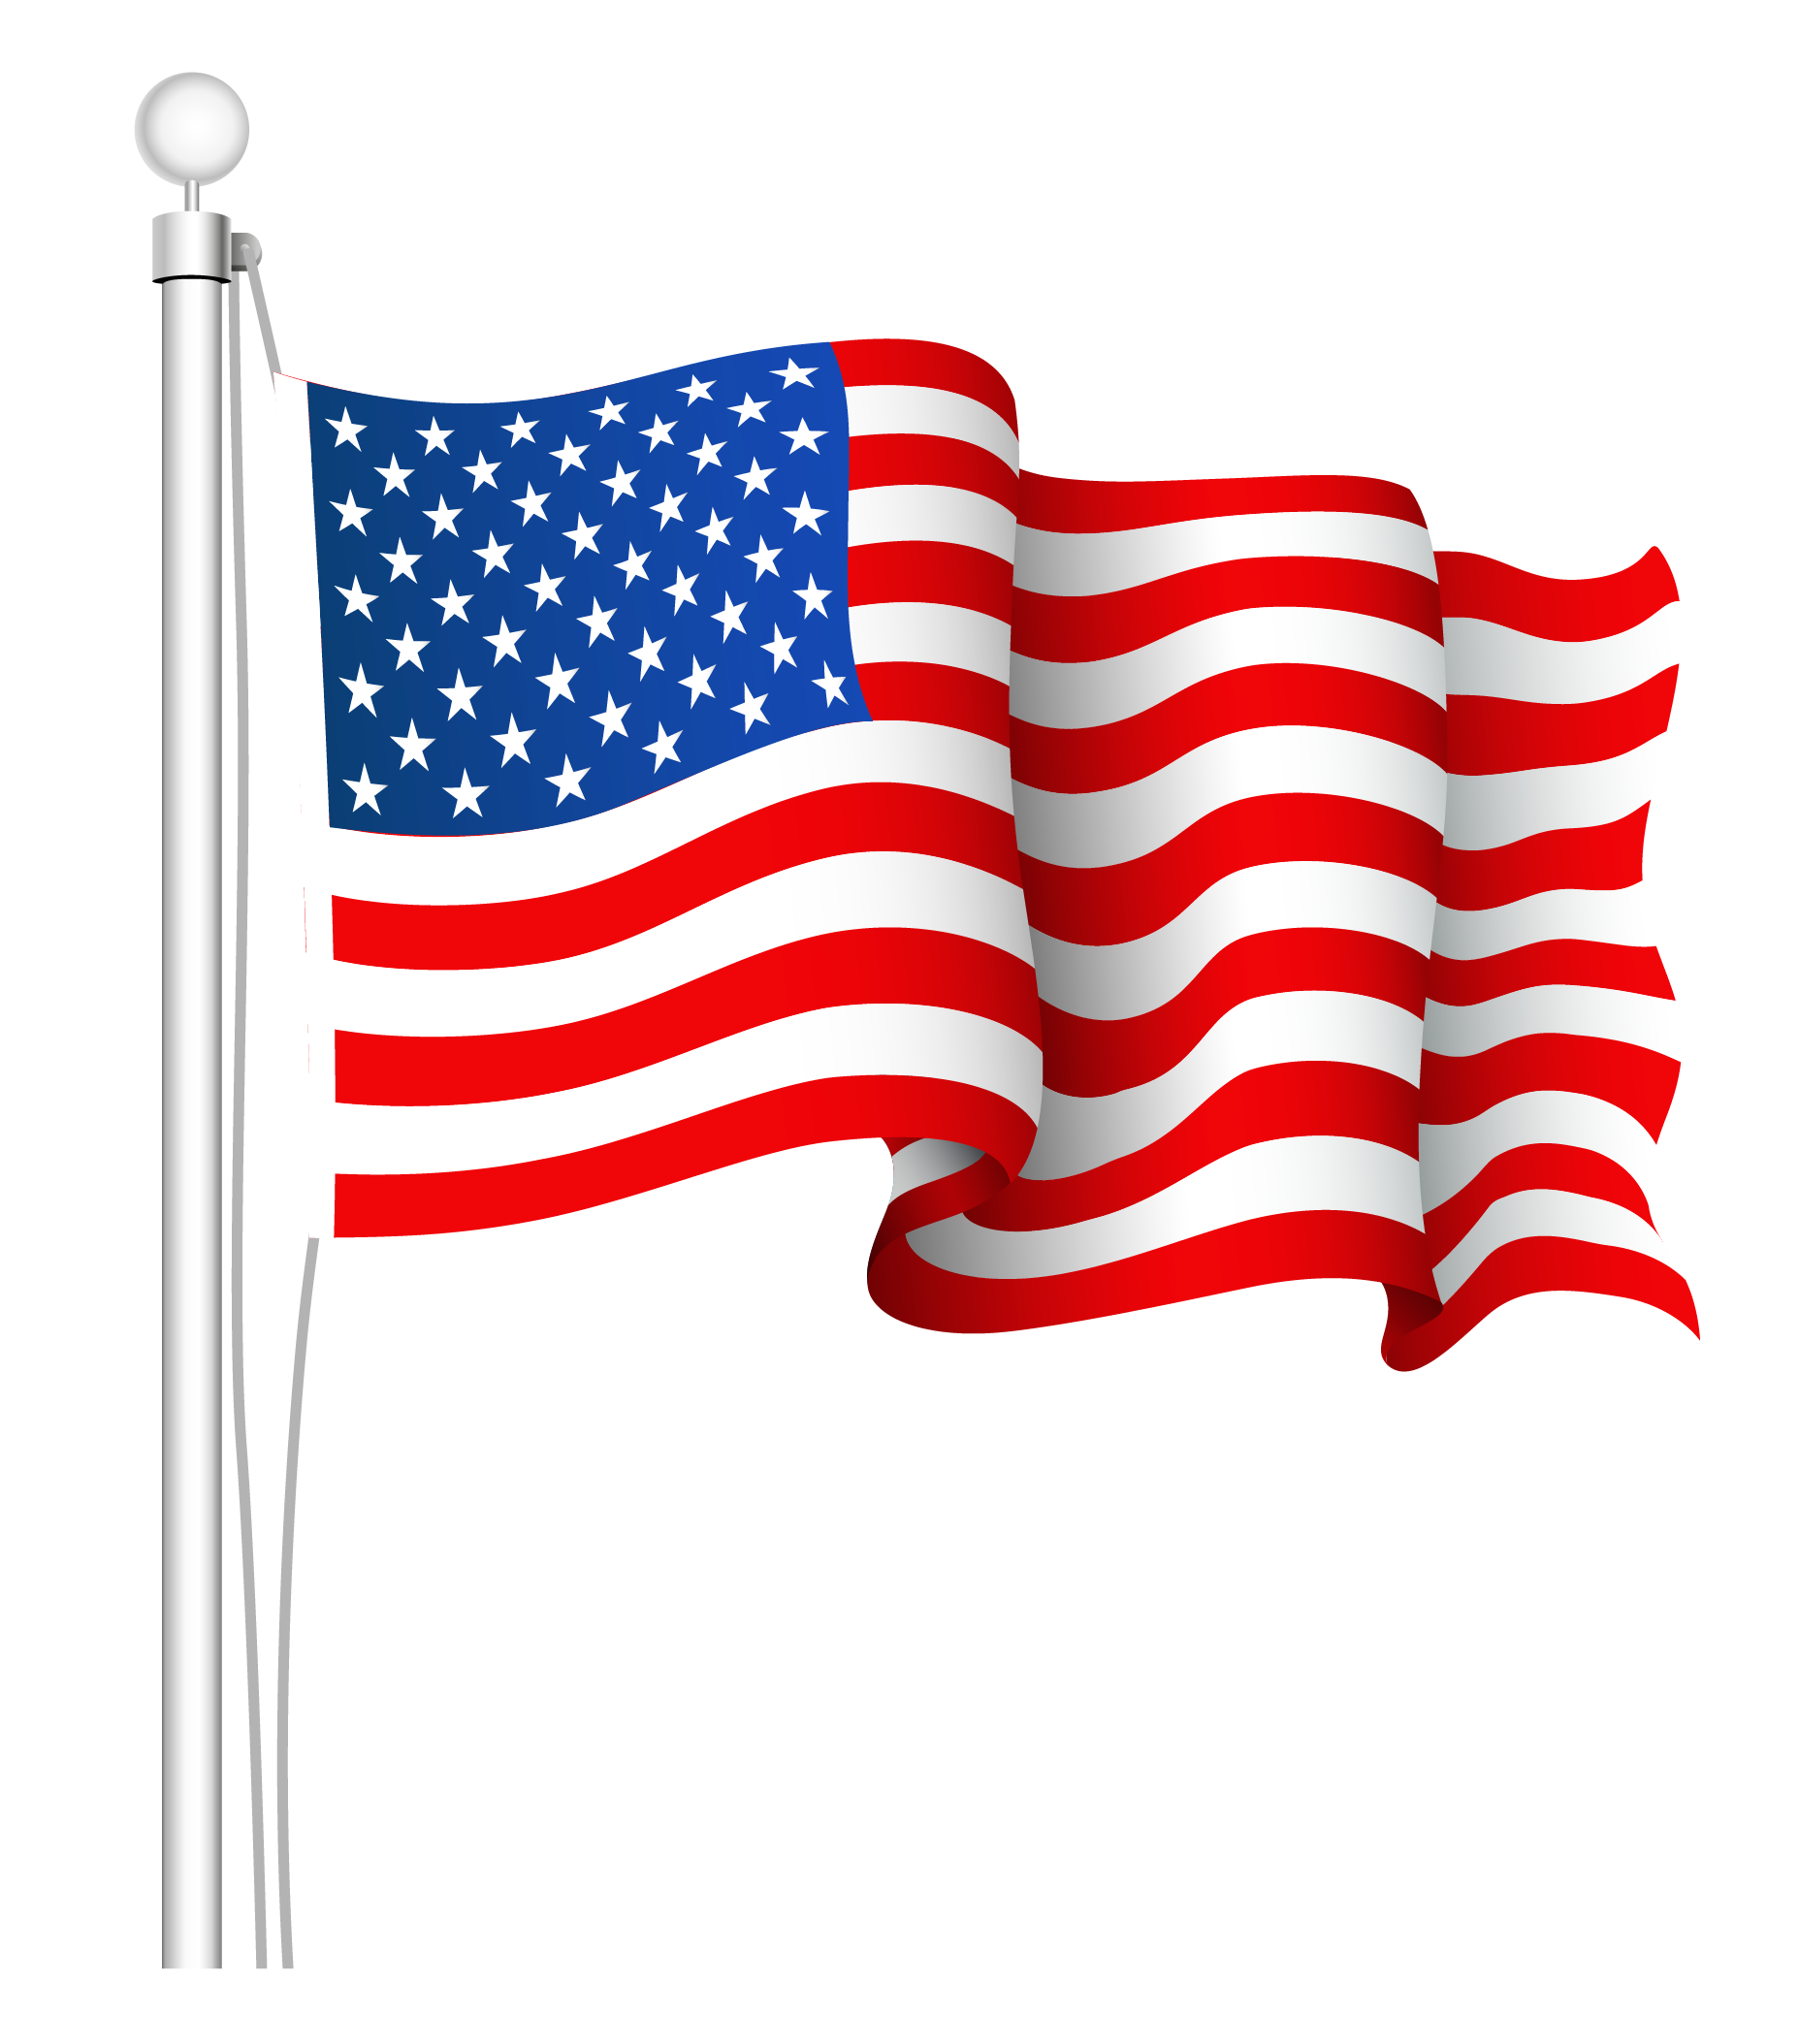 United states american flag clipart